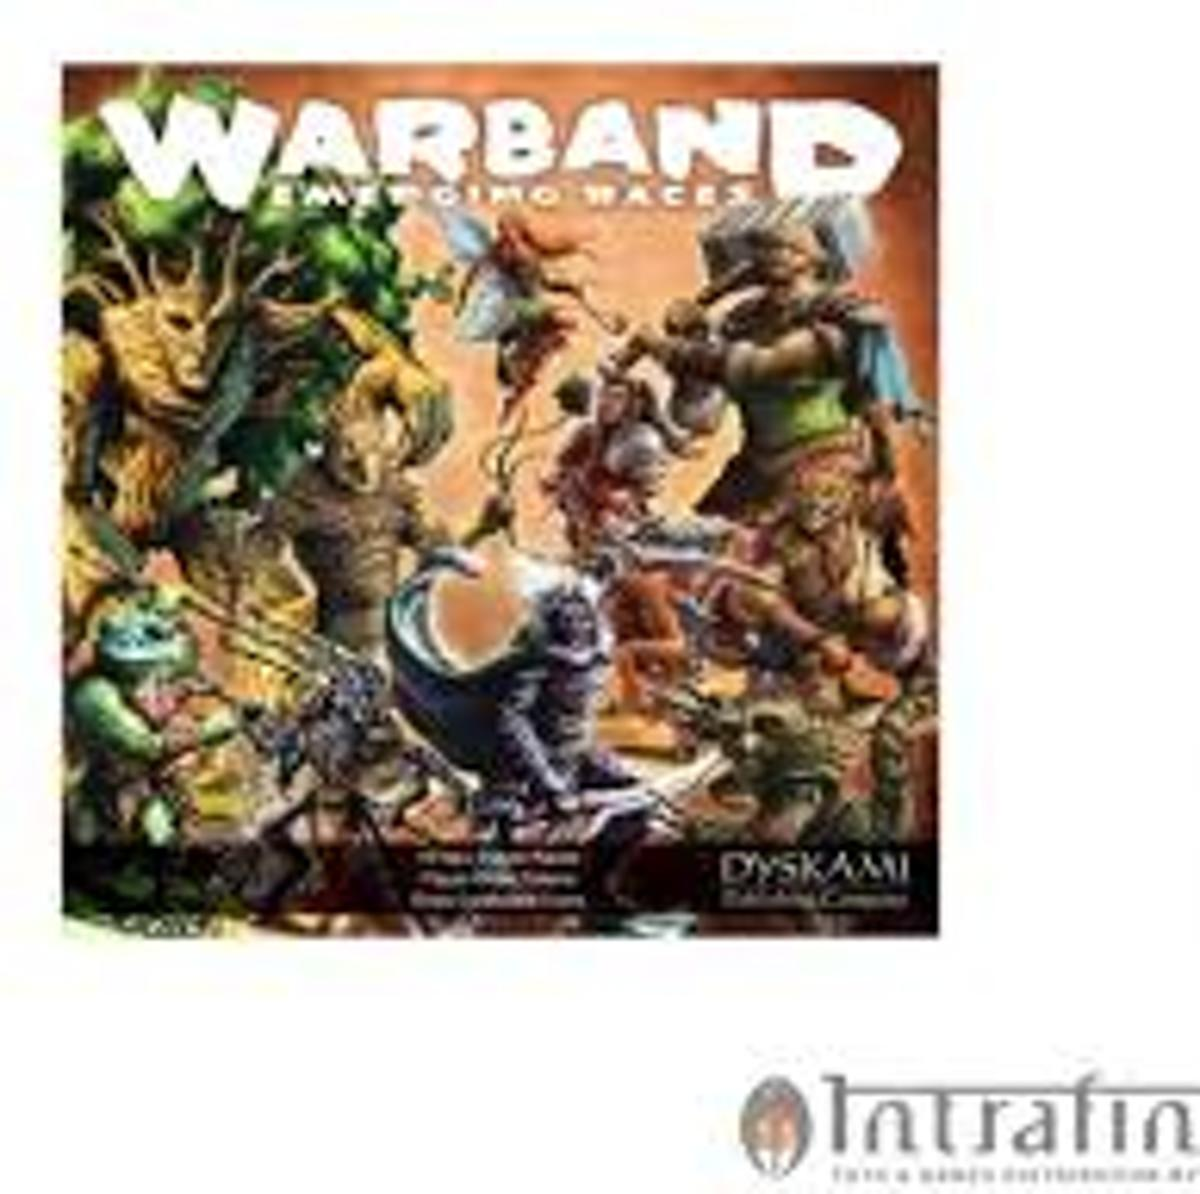 Warband : Emerging races